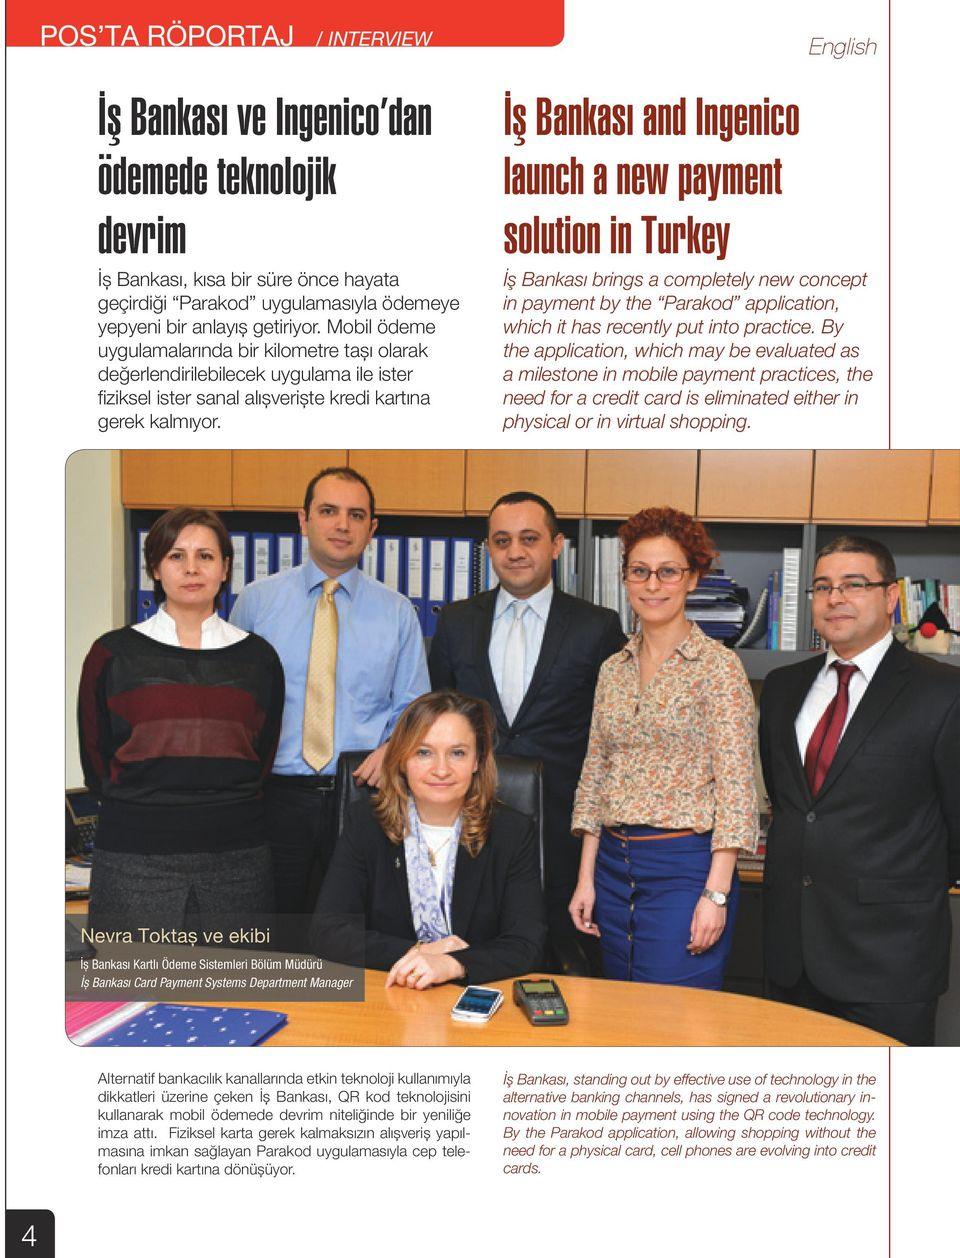 İş Bankası and Ingenico launch a new payment solution in Turkey English İş Bankası brings a completely new concept in payment by the Parakod application, which it has recently put into practice.